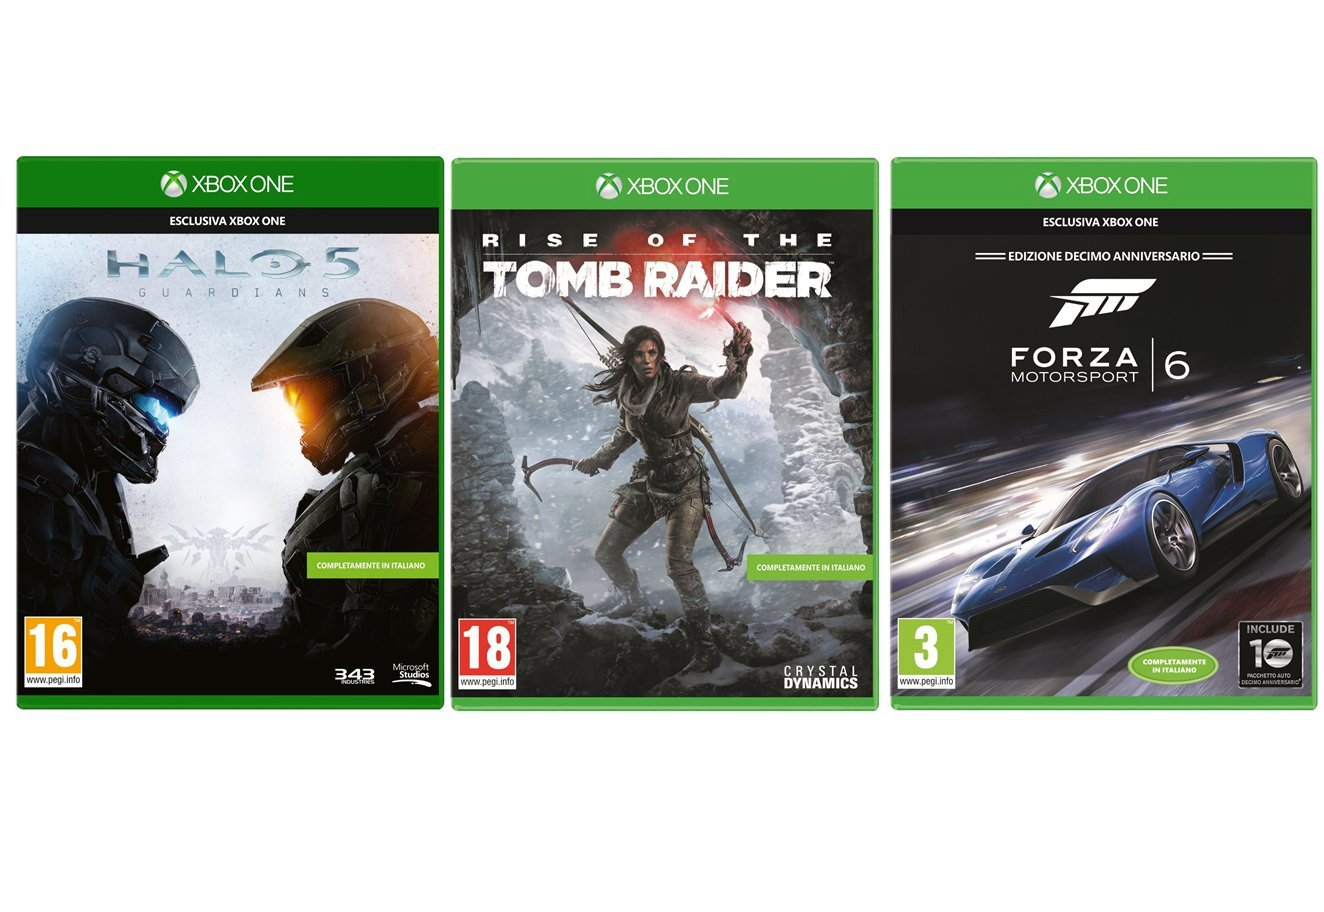 Bundle XboxOne in offerta da amazon: 3 Giochi